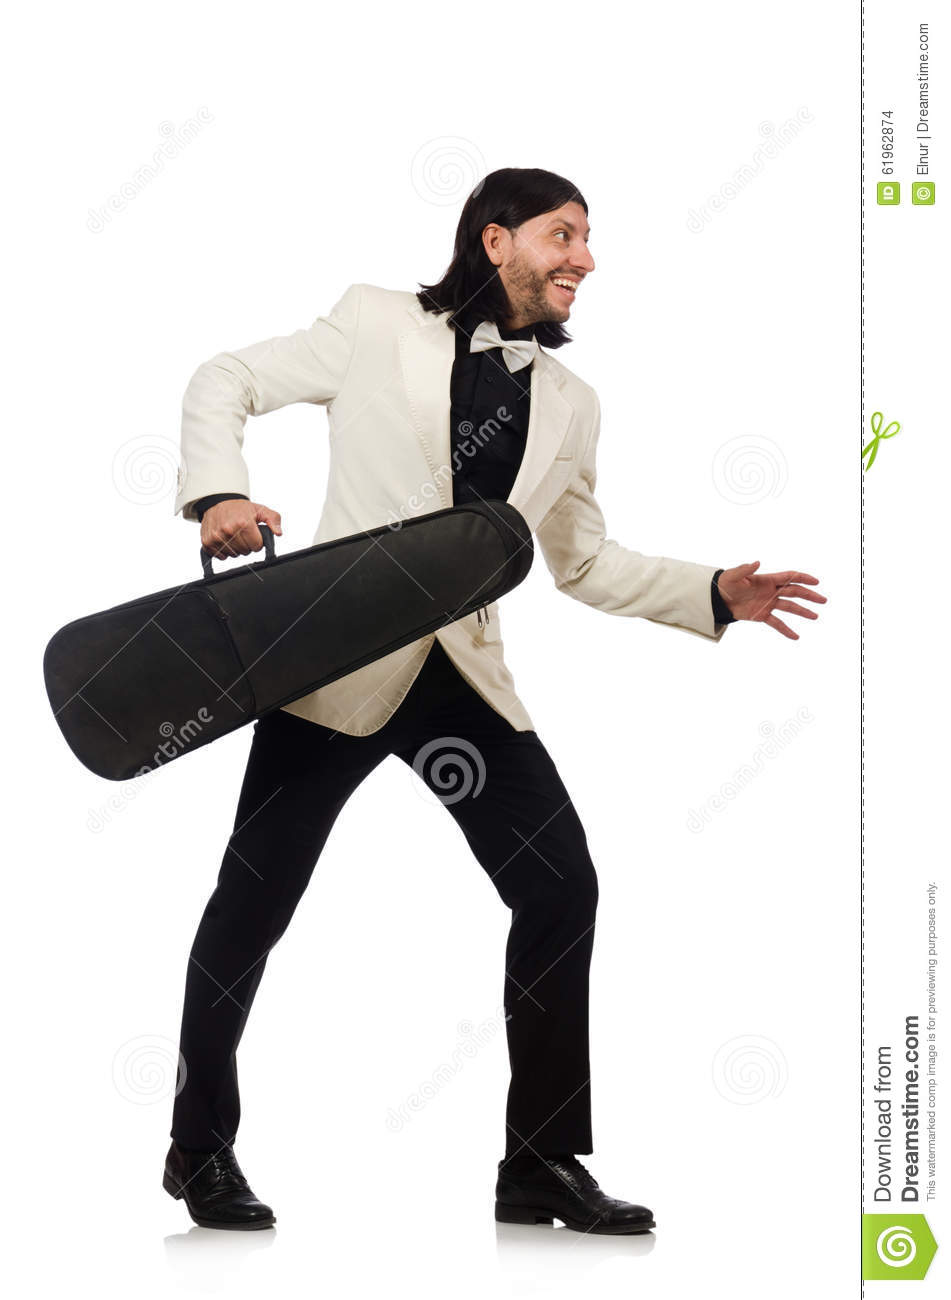 Download The Man With Violin Case On Whtie Stock Photo - Image of isolated, case: 61962874